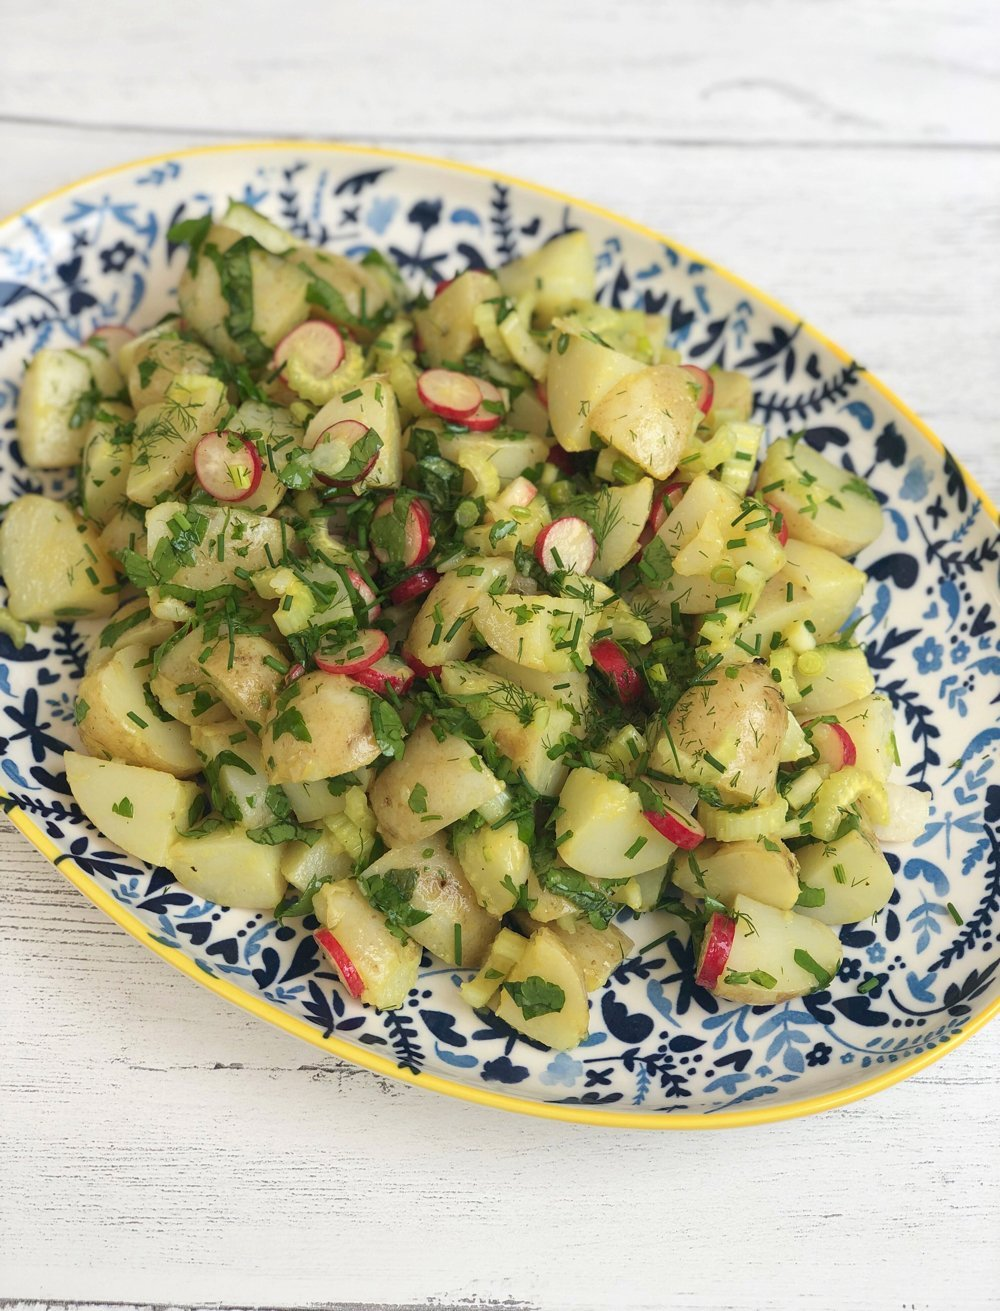 Potato Salad with Radishes and Herbs